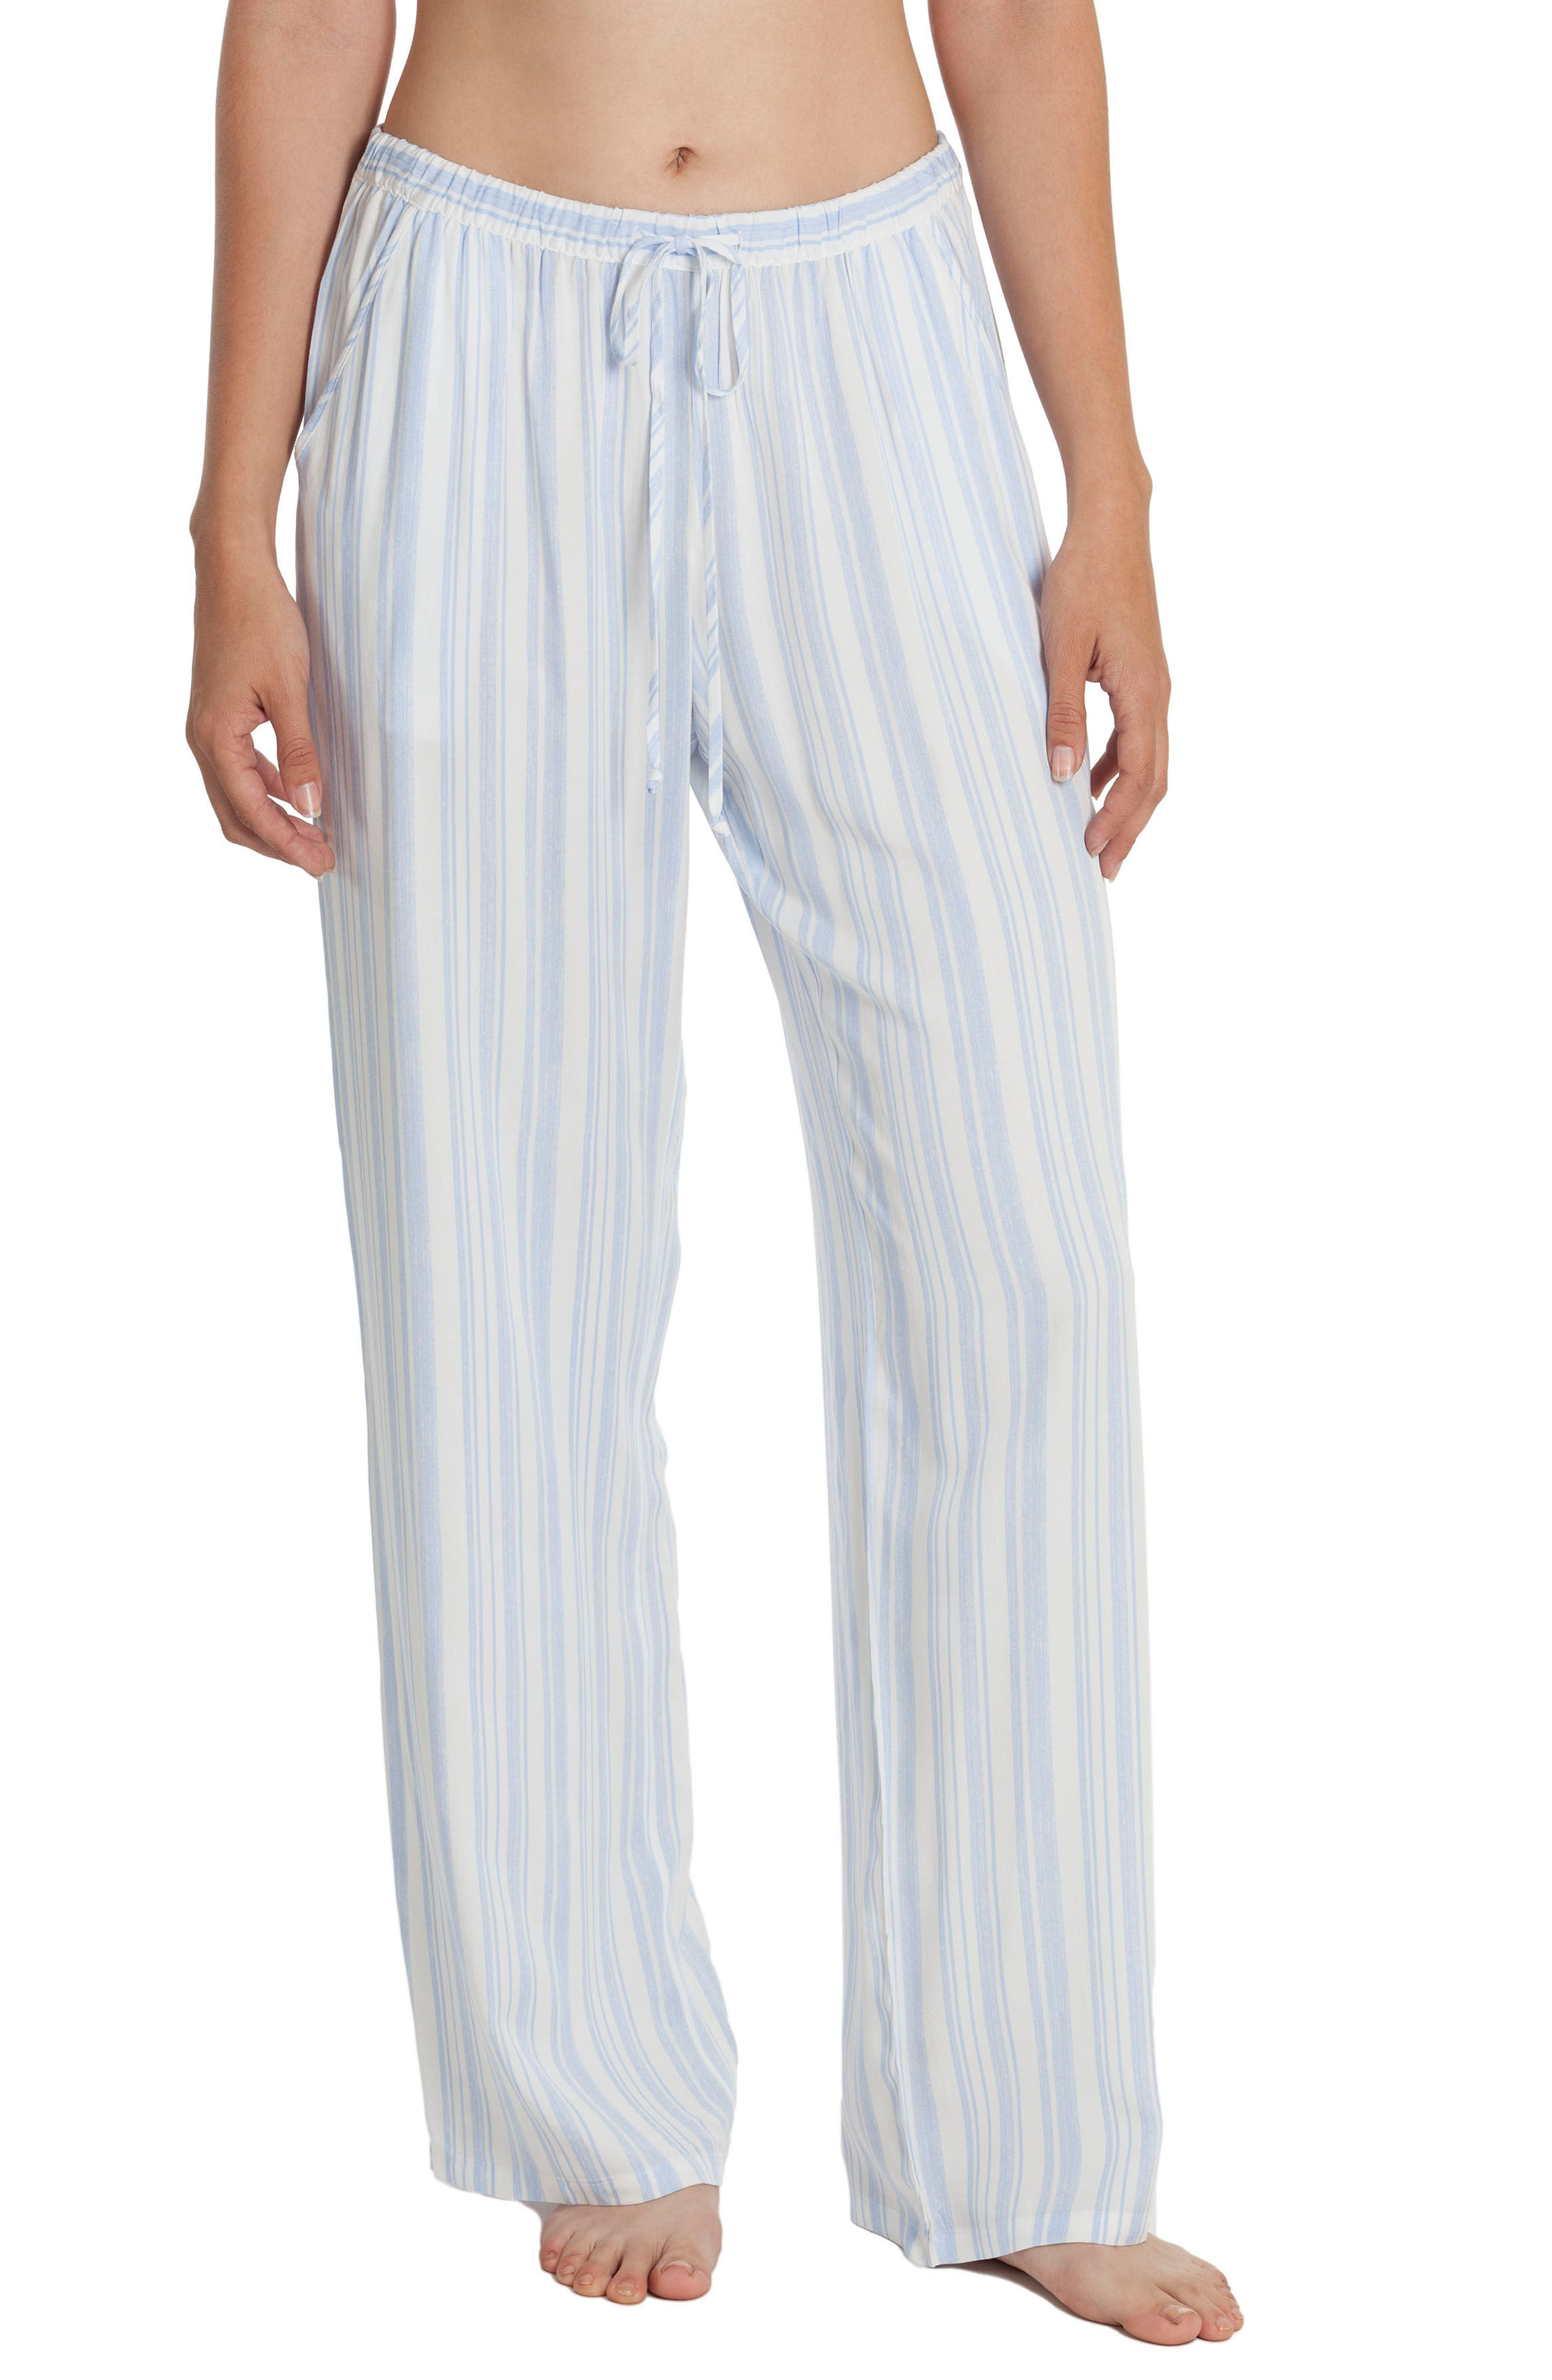 IN BLOOM BY JONQUIL Pajama Pants